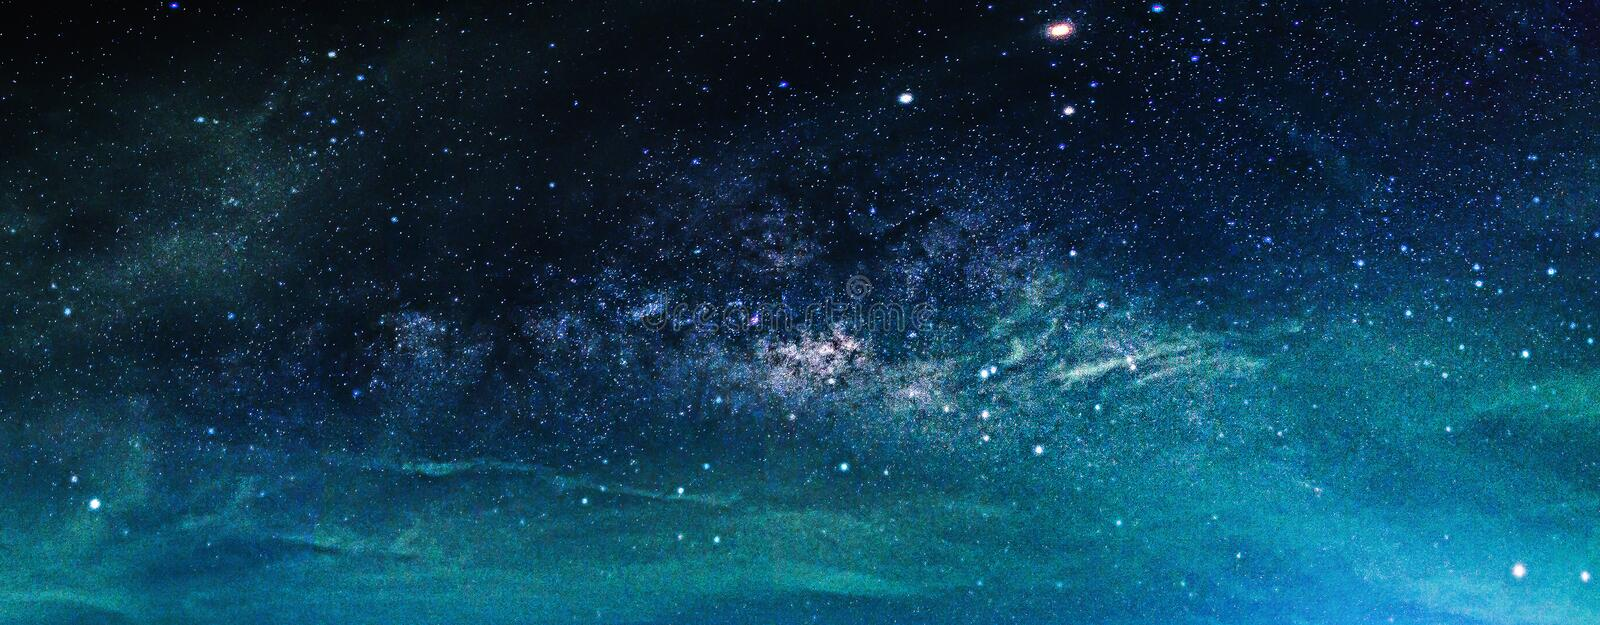 Landscape with Milky way galaxy. Night sky with stars stock images